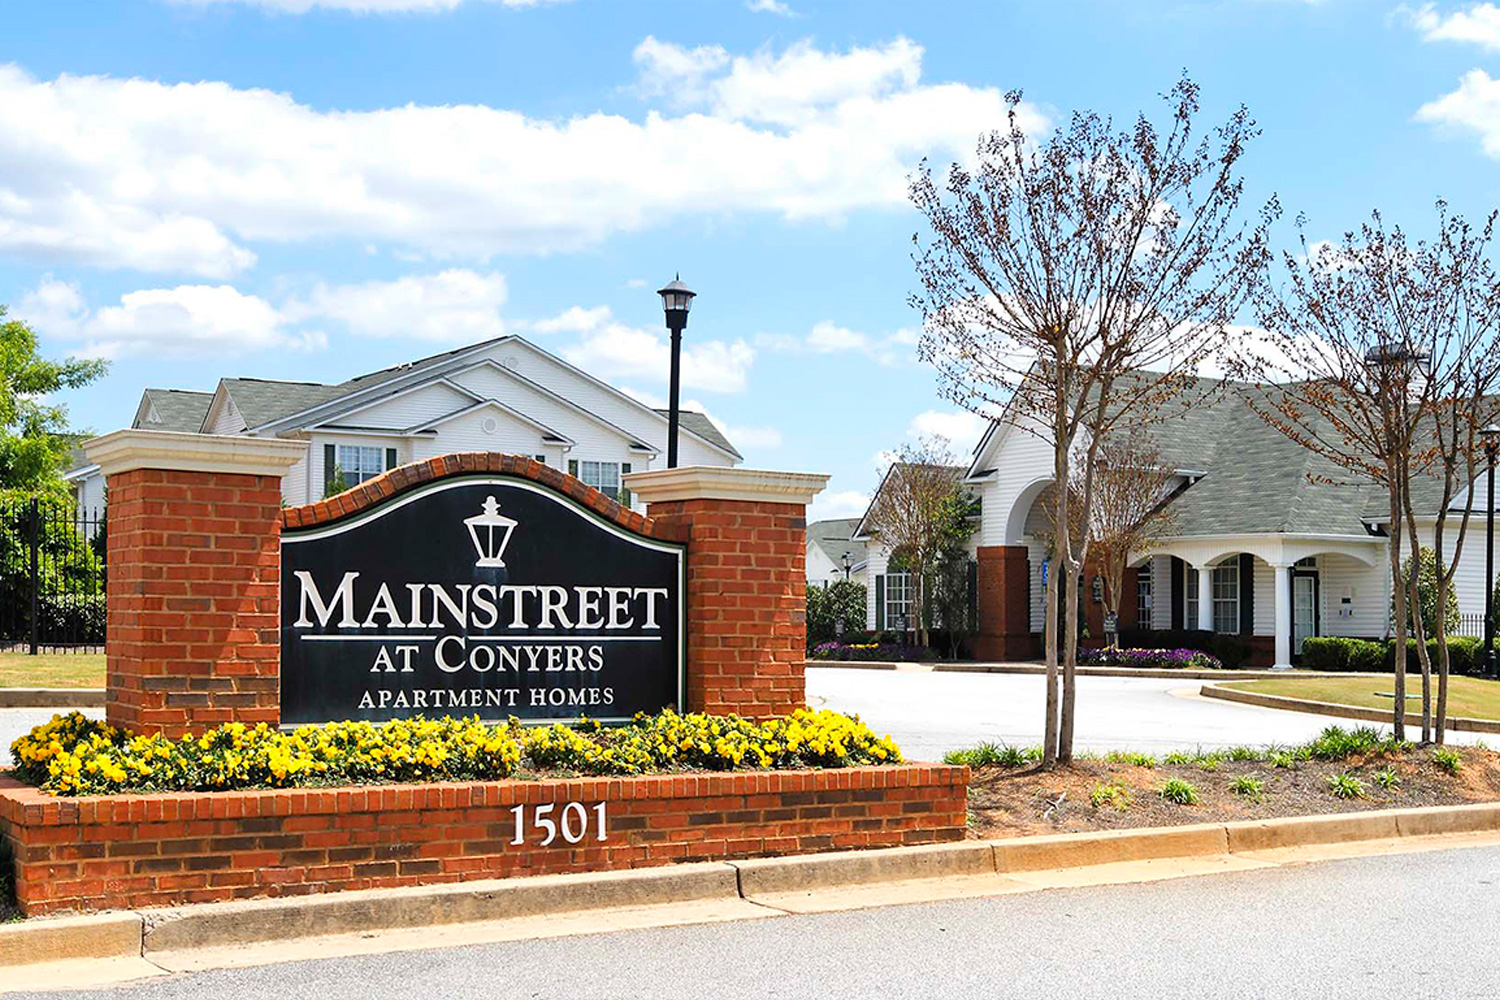 Balfour Beatty Communities selected to manage Mainstreet at Conyers